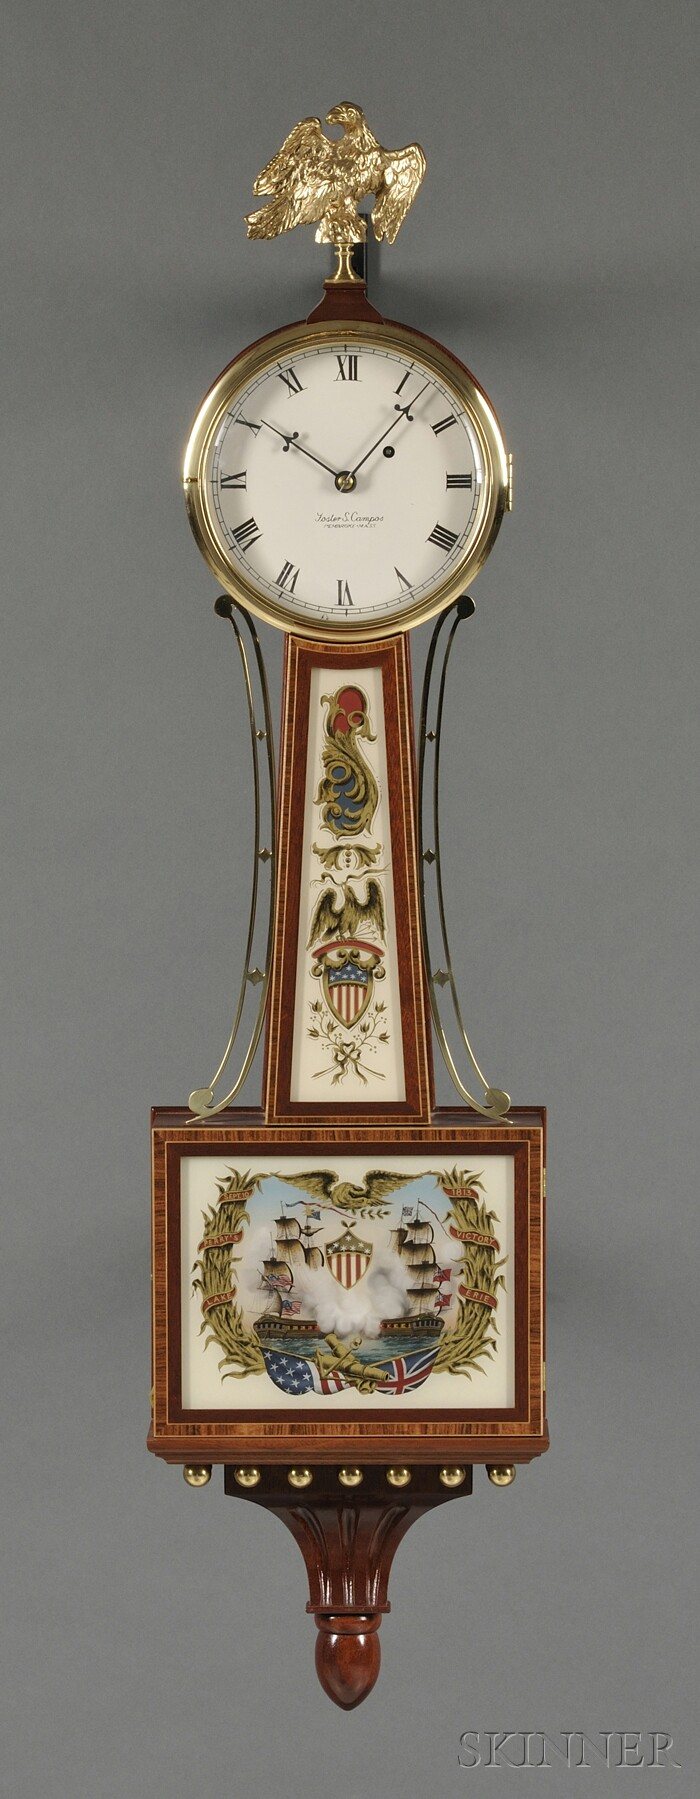 "Foster Campos Mahogany Patent Timepiece or ""Banjo"" Clock"